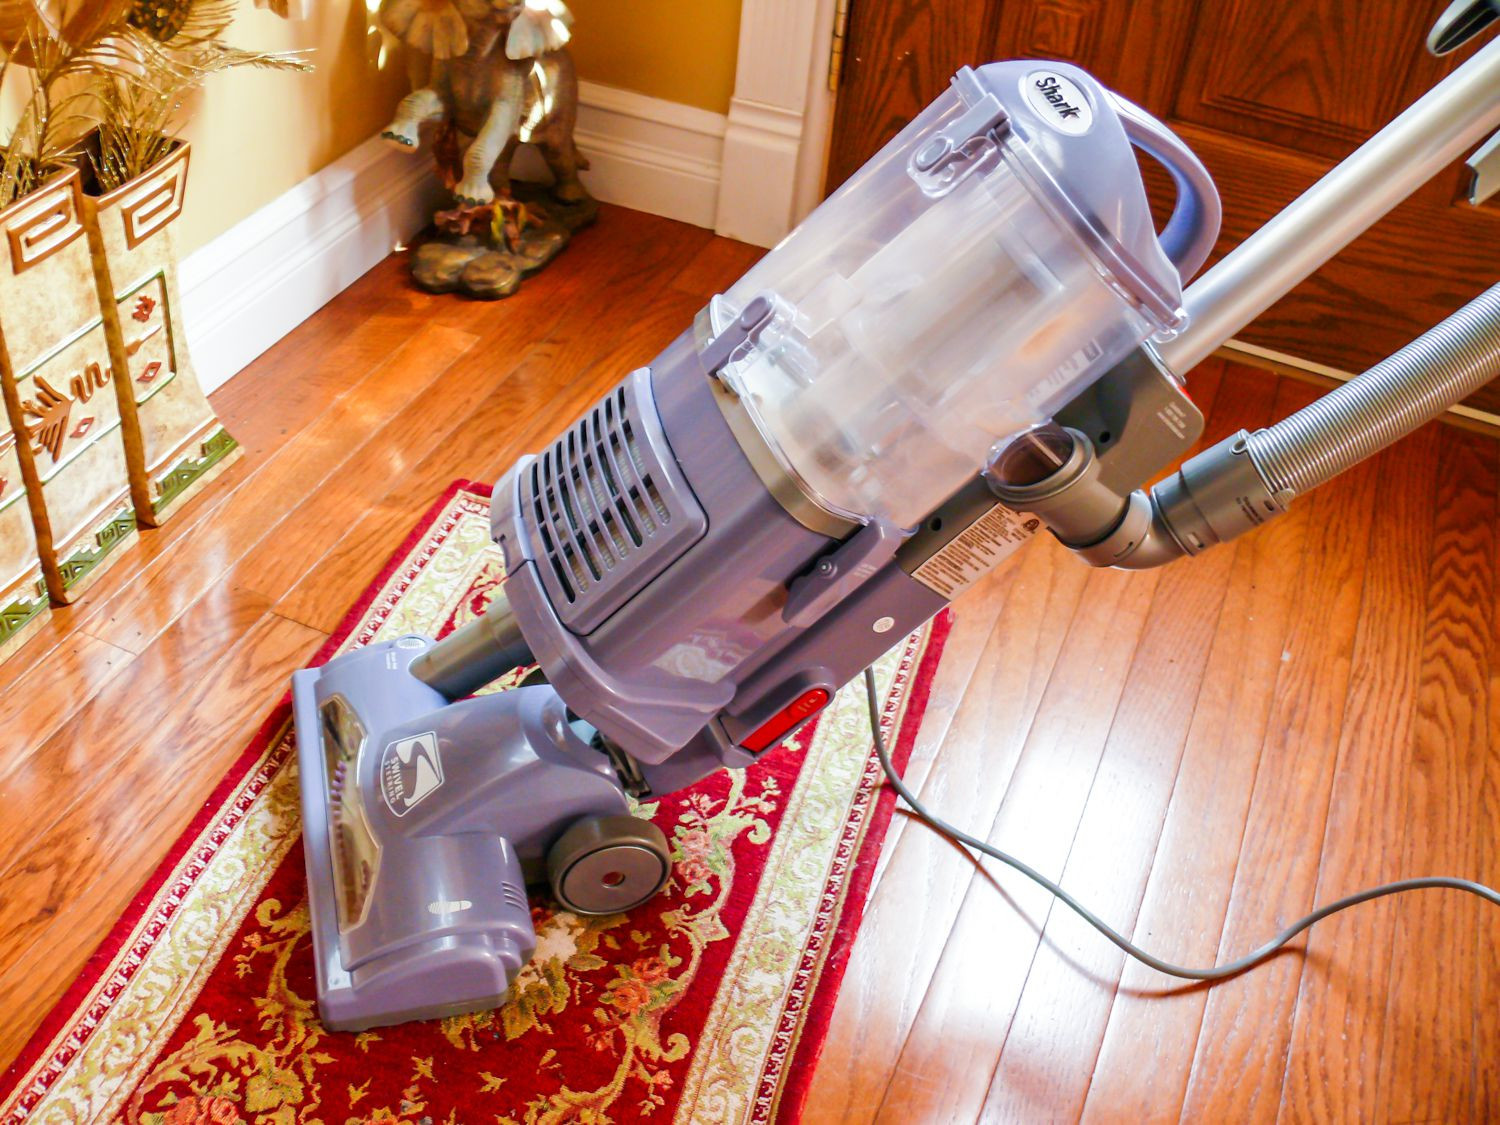 battery operated hardwood floor vacuum of the 10 best vacuum cleaners to buy in 2018 in 4062974 2 2 5bbf718a46e0fb00519d59a7